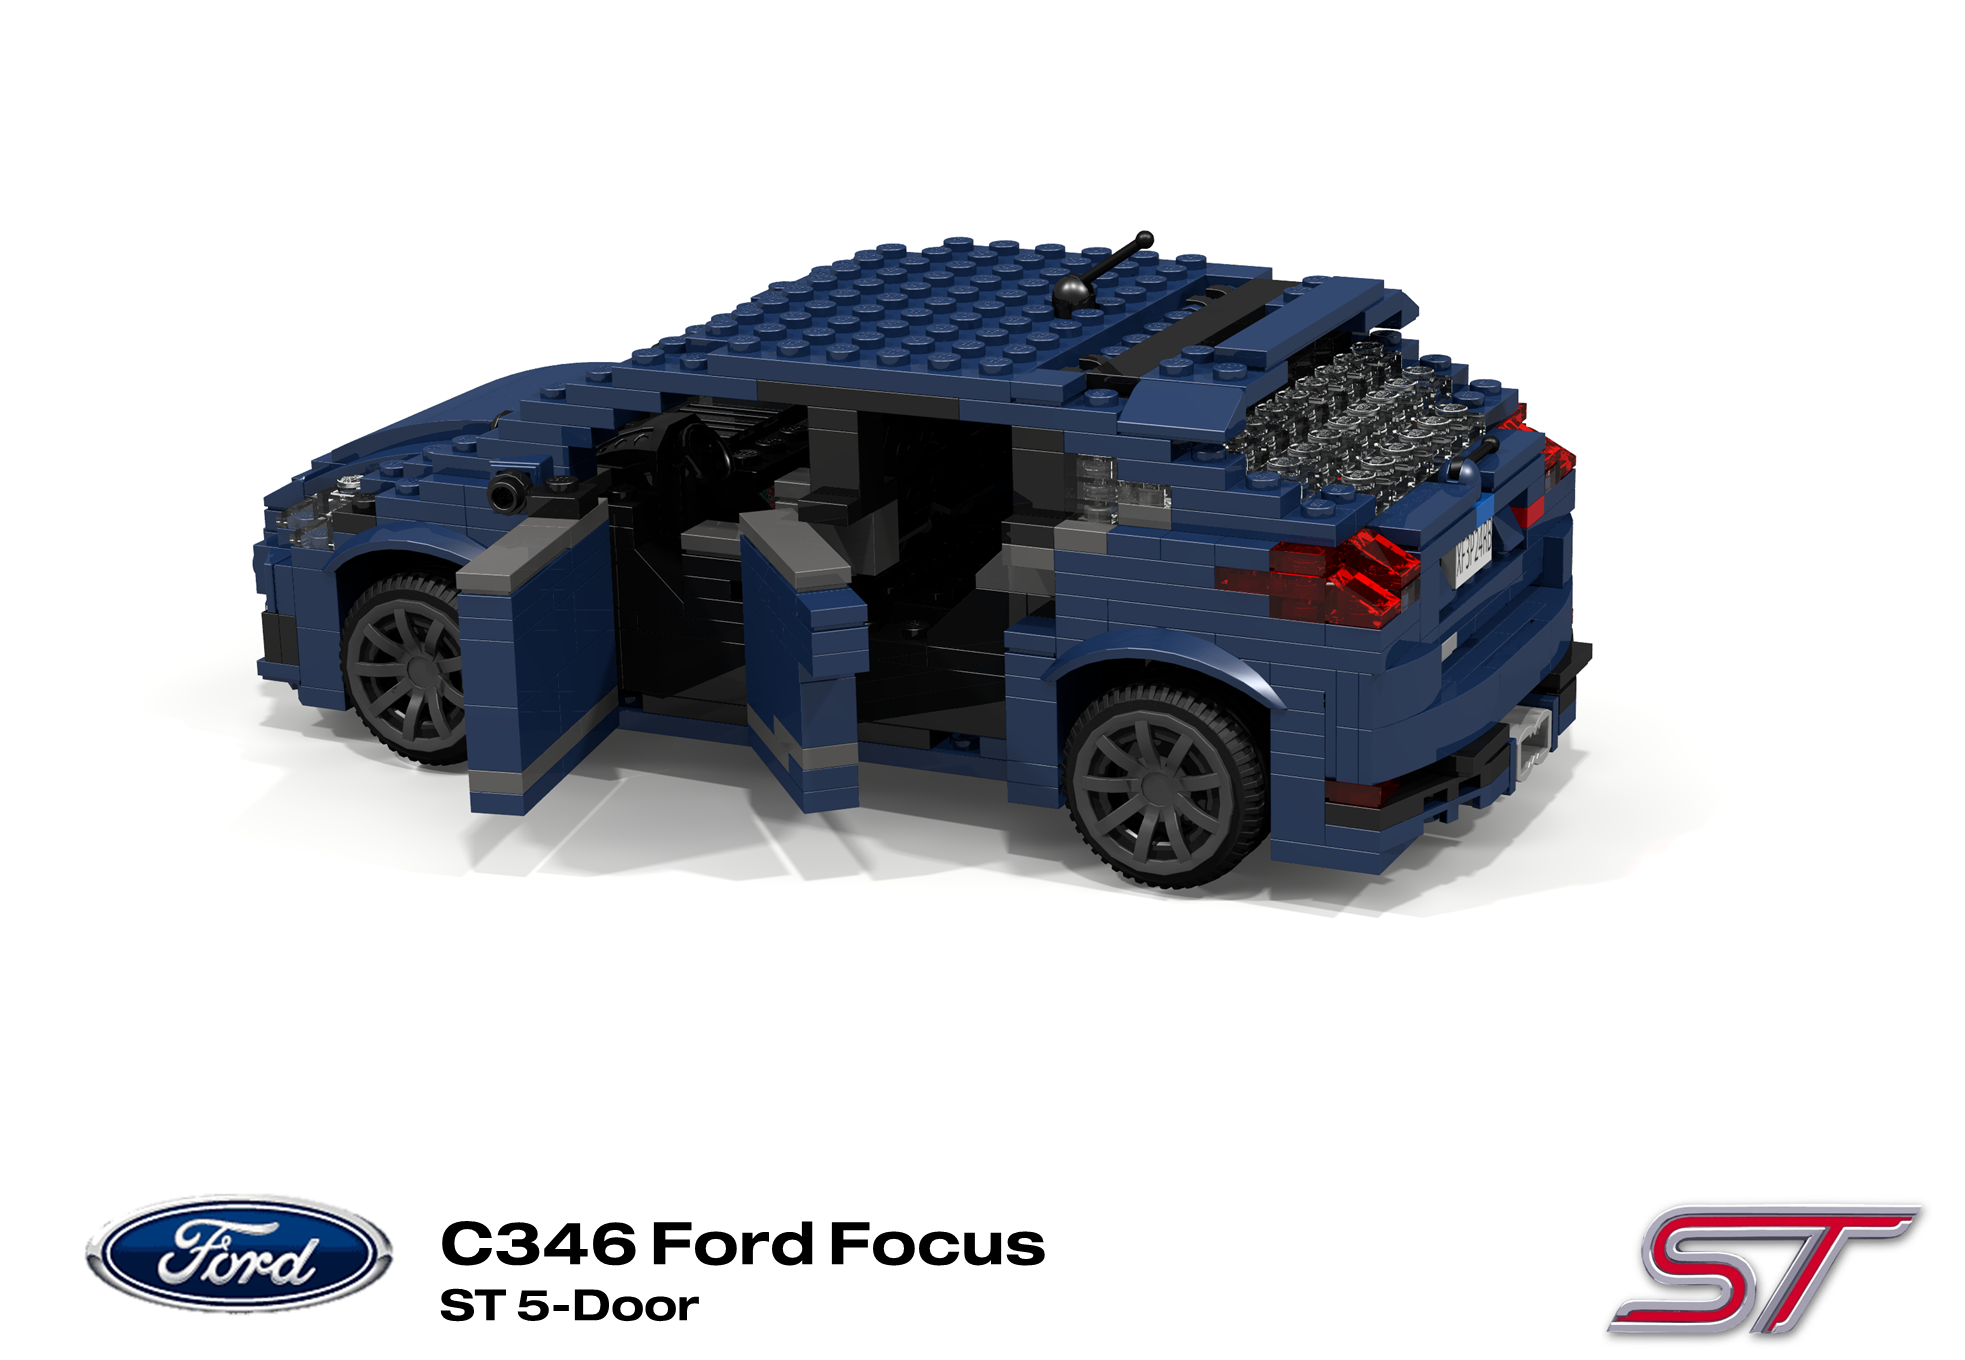 ford_focus_c346mca_st_hatch_05.png